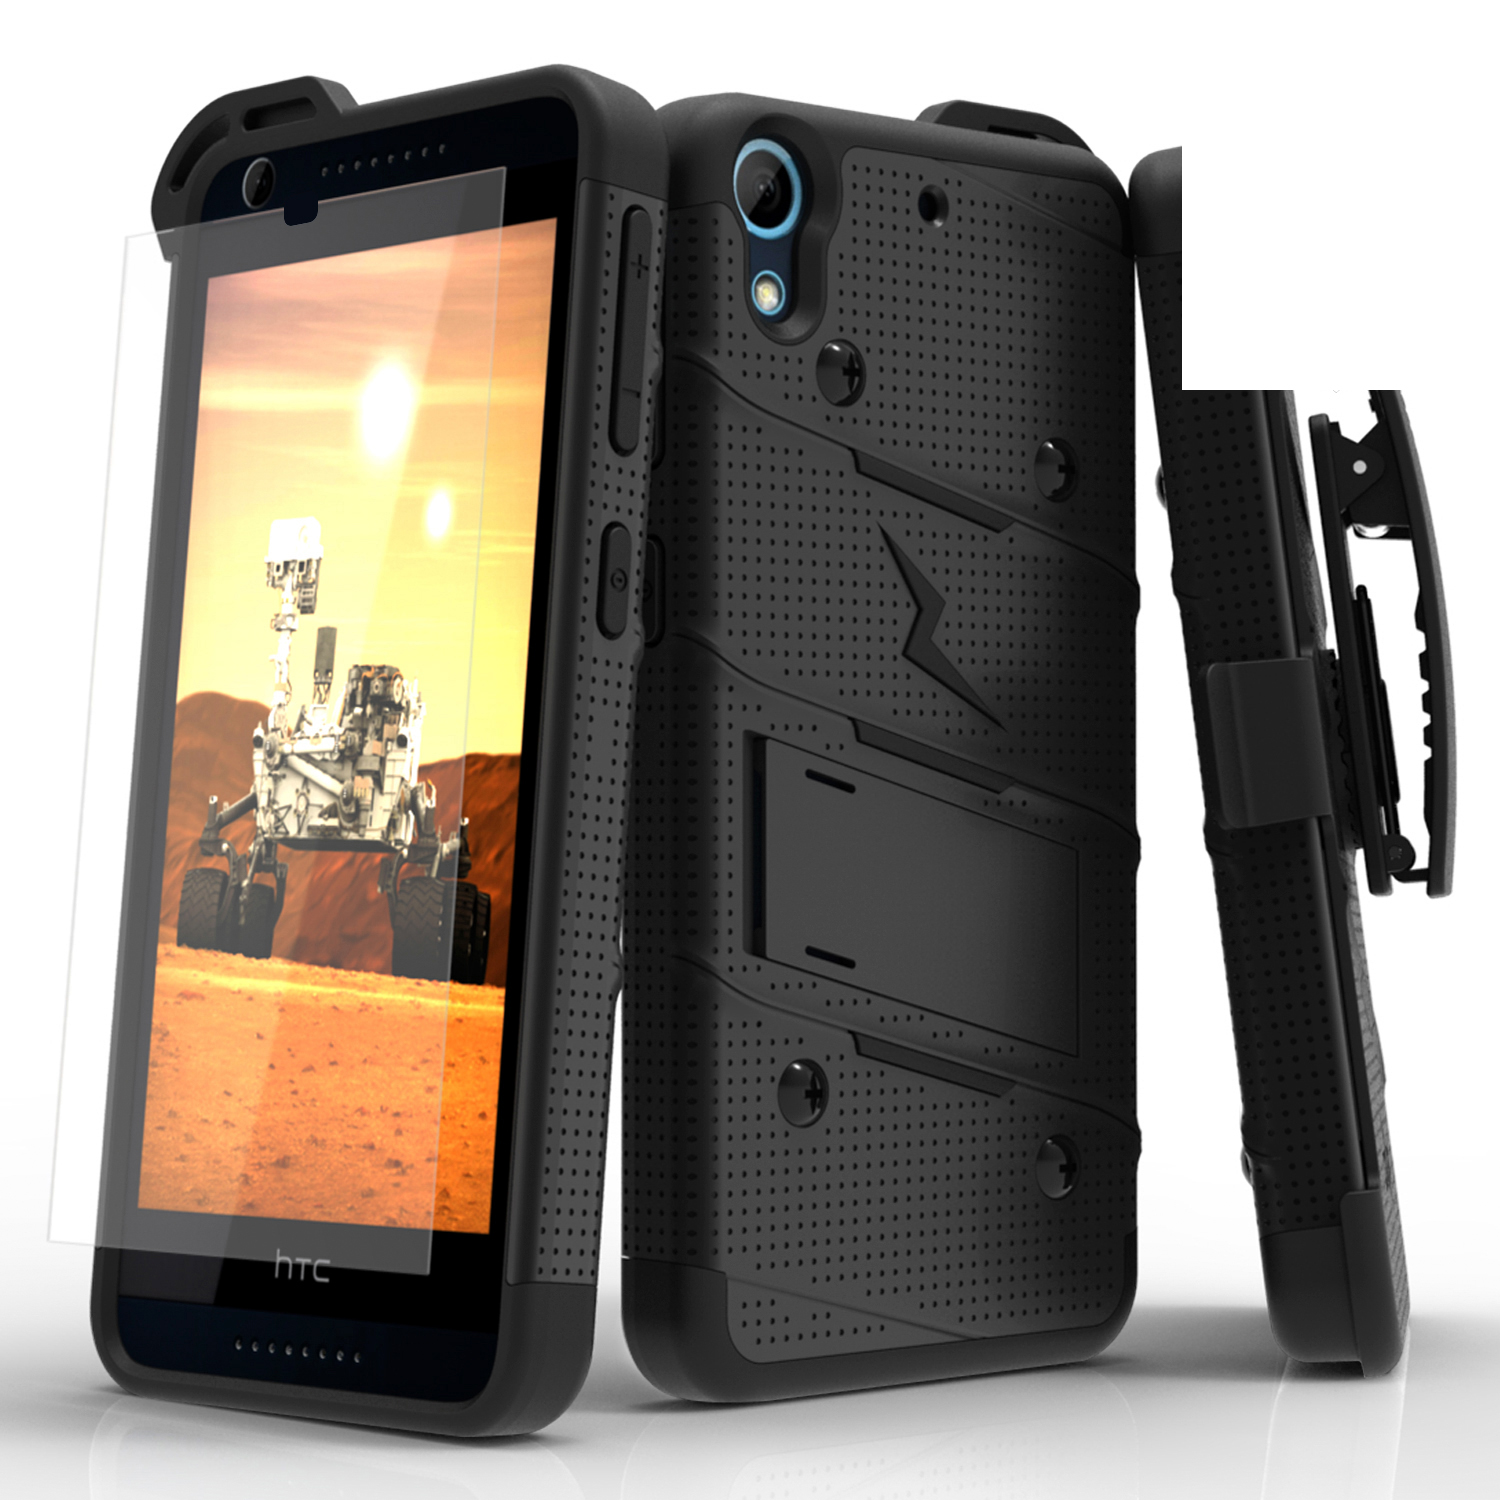 HTC Desire 626/ 626S Case - [bolt] Heavy Duty Cover w/ Kickstand, Holster, Tempered Glass Screen Protector & Lanyard [Black]